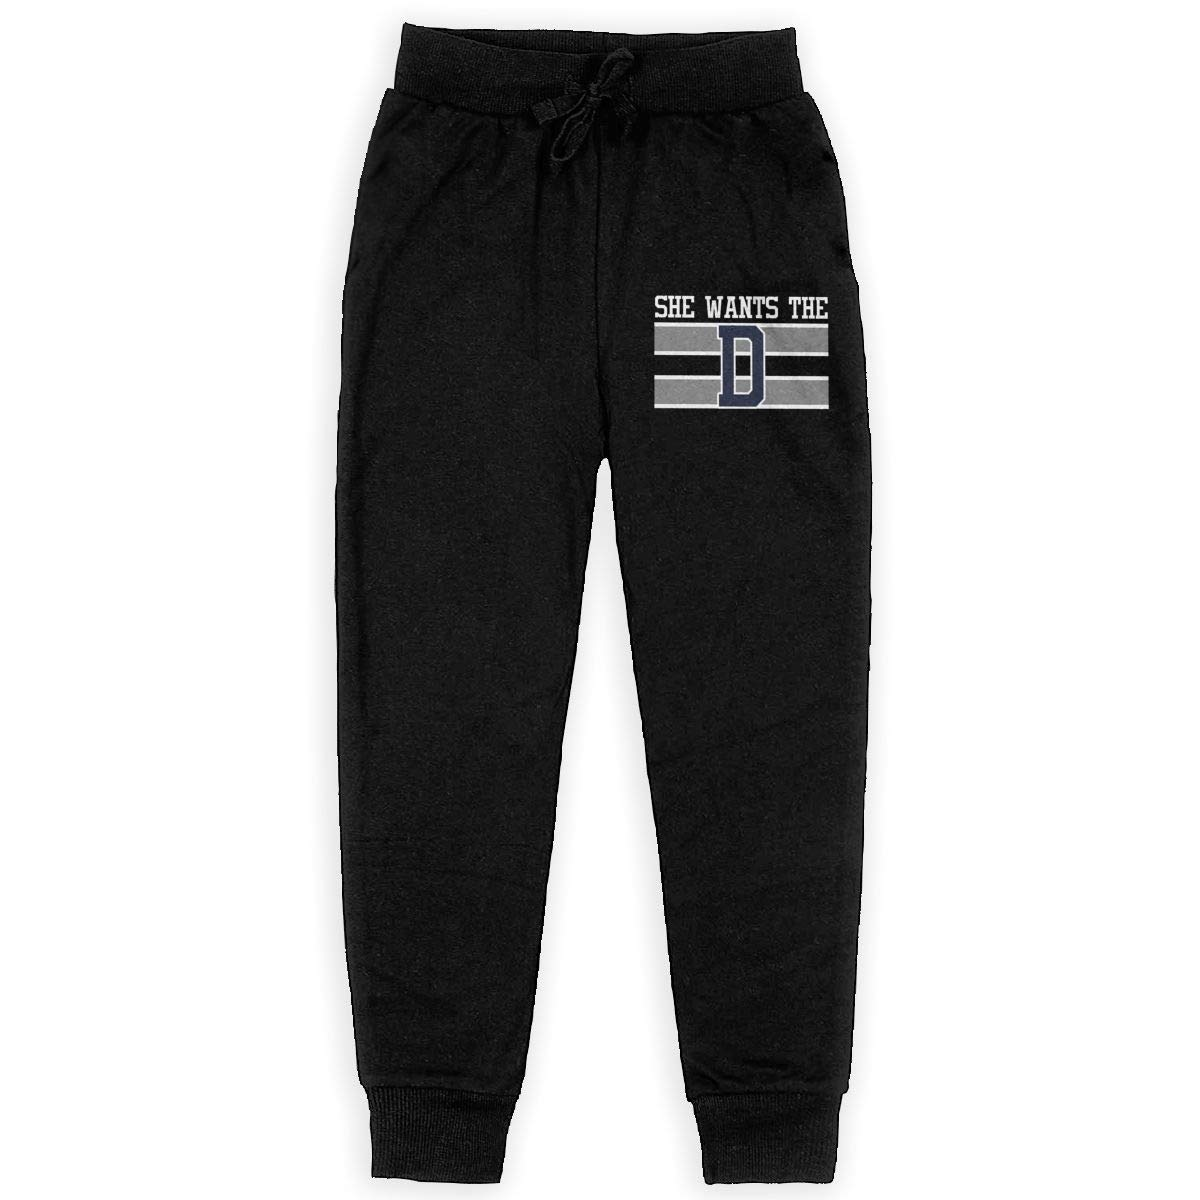 Dunpaiaa She Wants The D Boys Sweatpants,Joggers Sport Training Pants Trousers Black